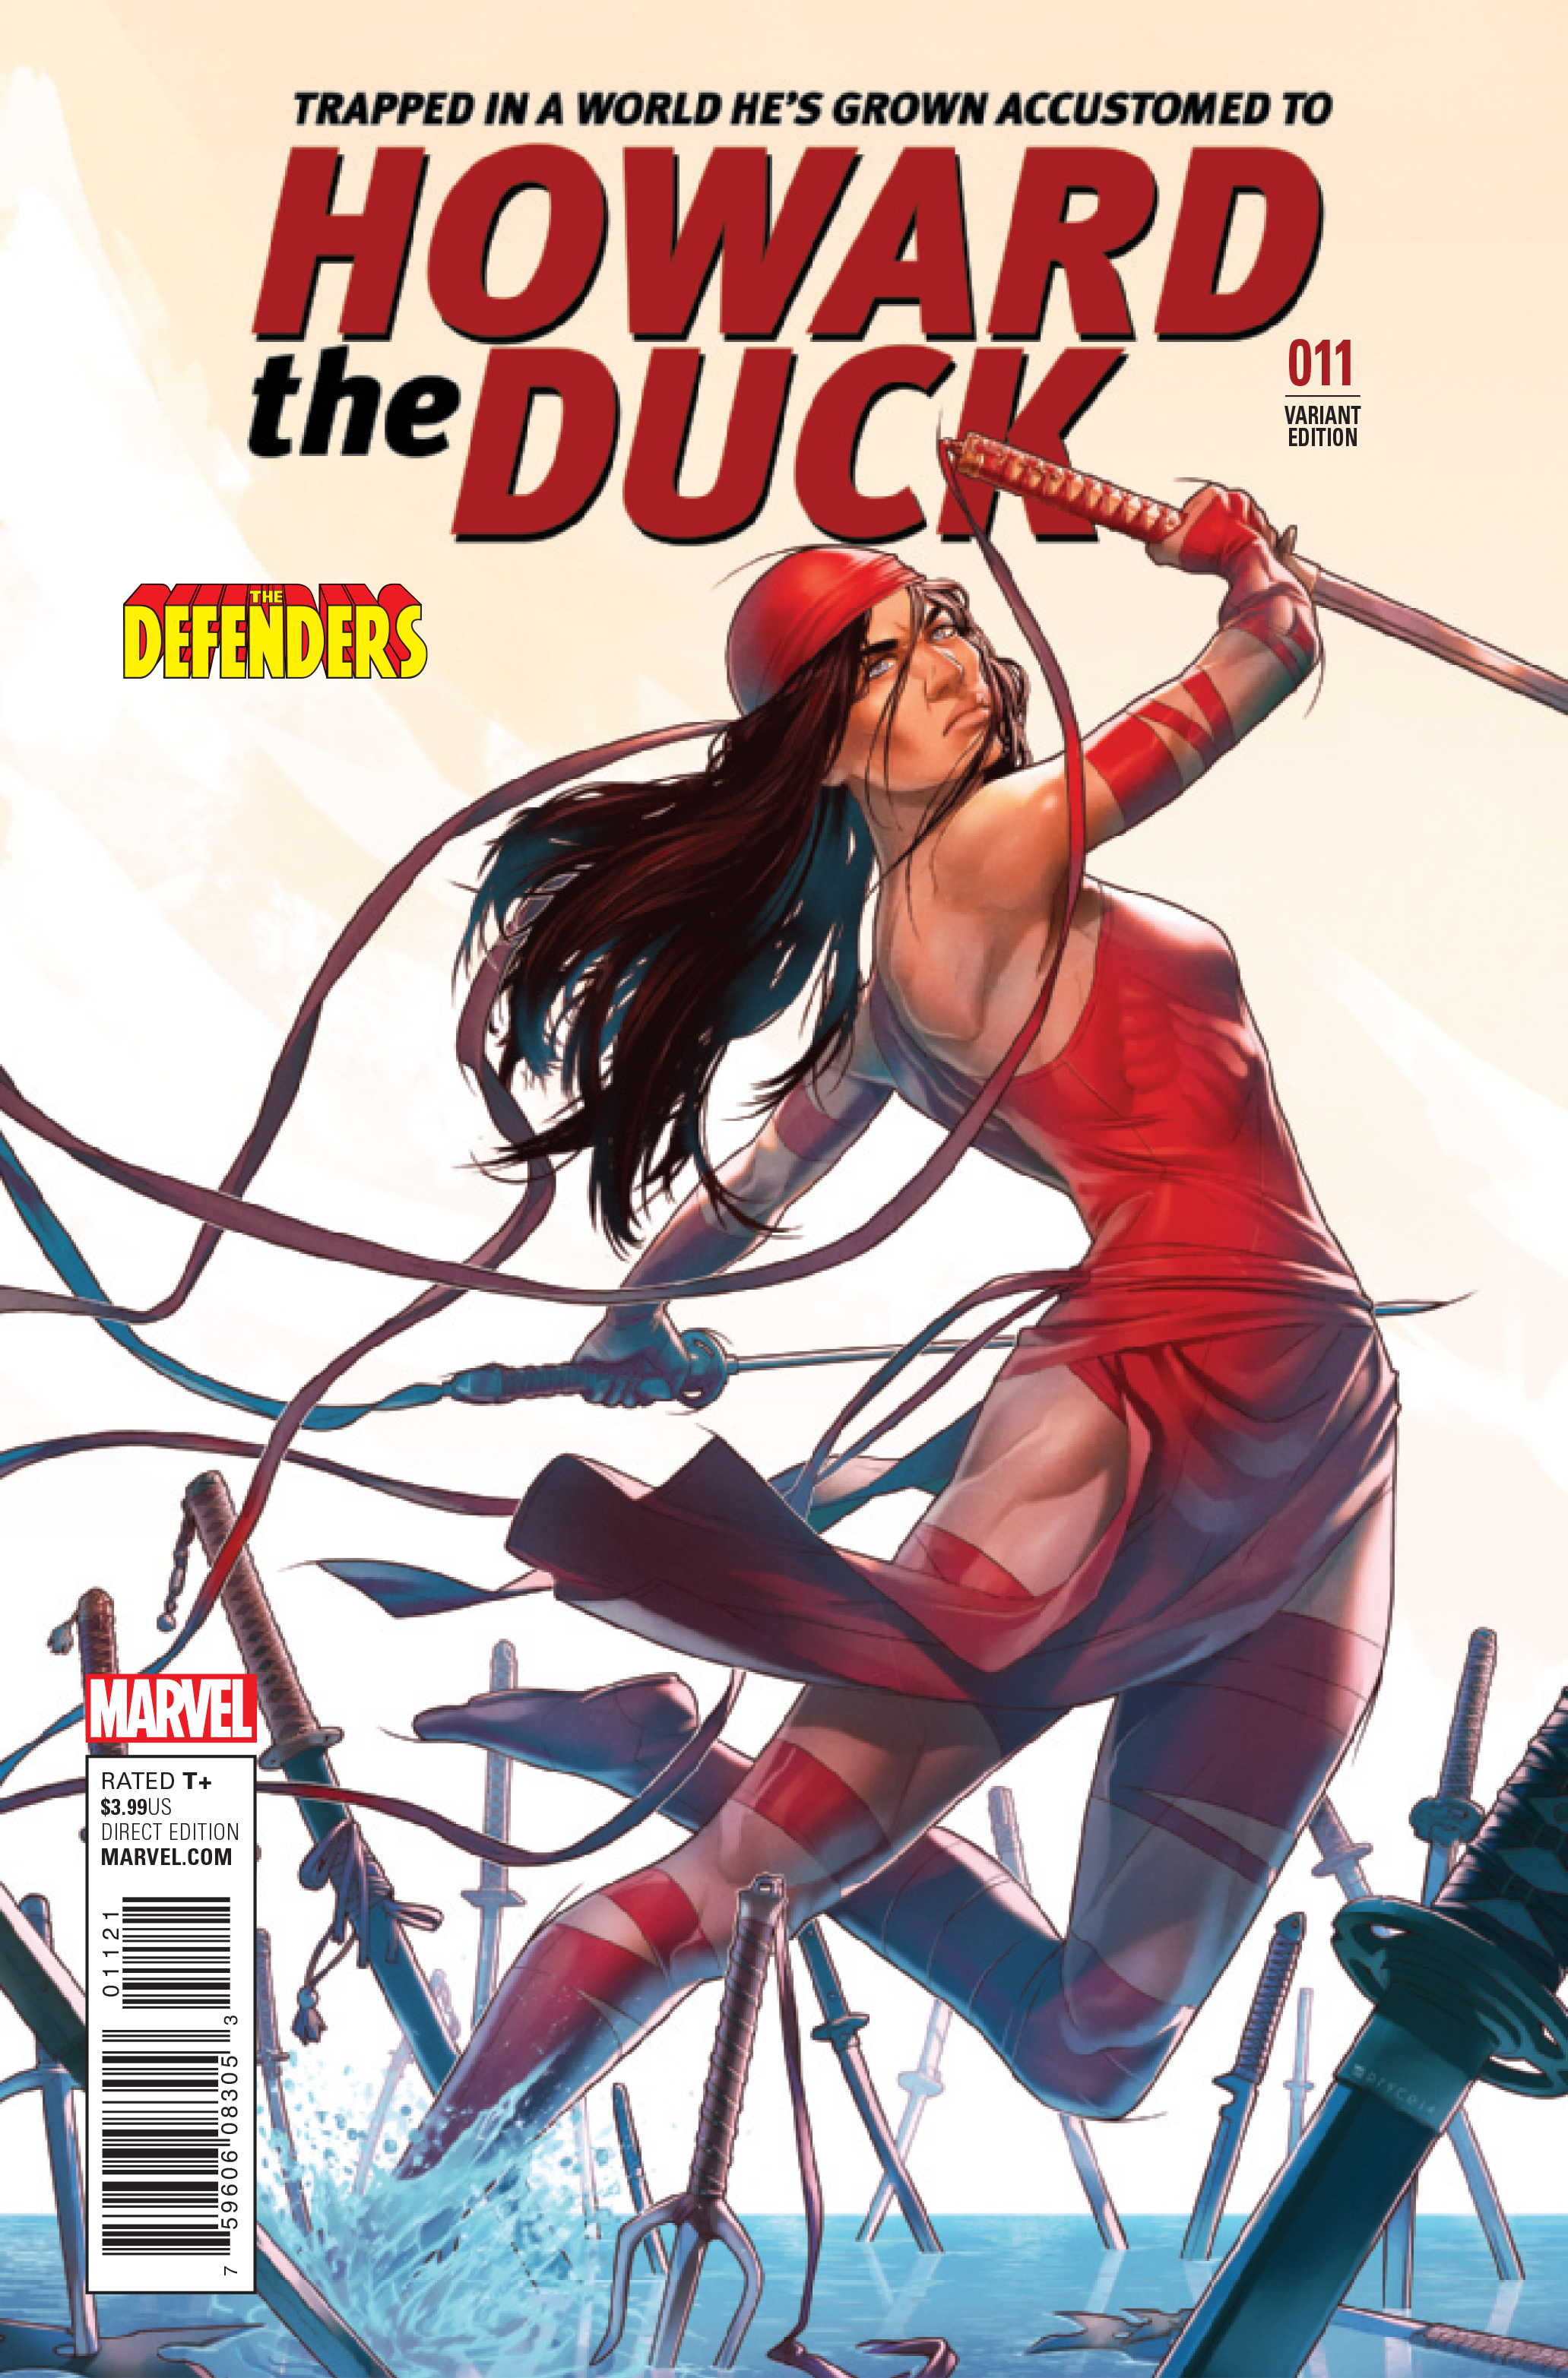 HOWARD THE DUCK #11 CAMPBELL DEFENDERS VAR